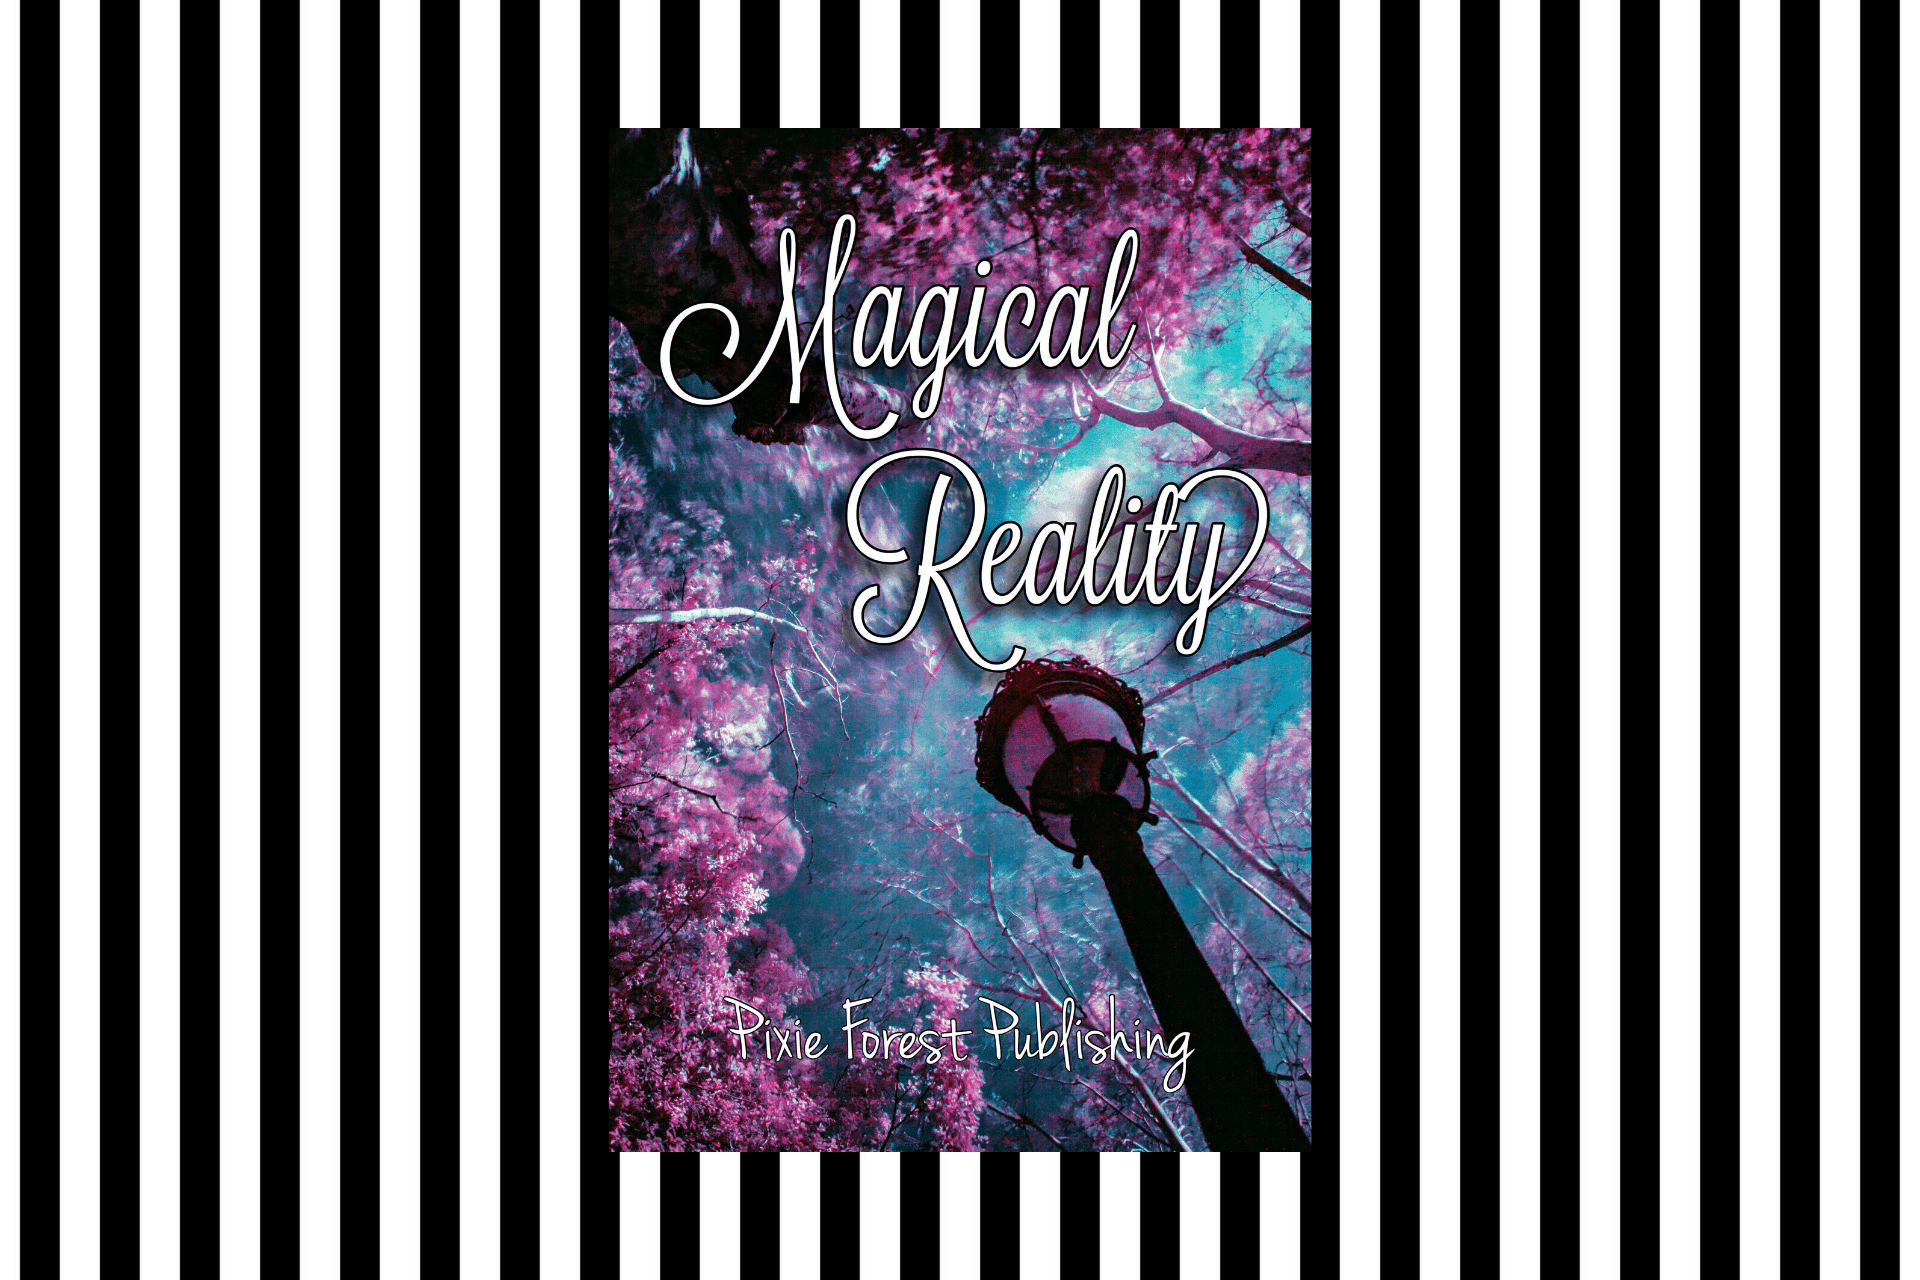 The cover of Magical Reality by Pixie Forest Publishing